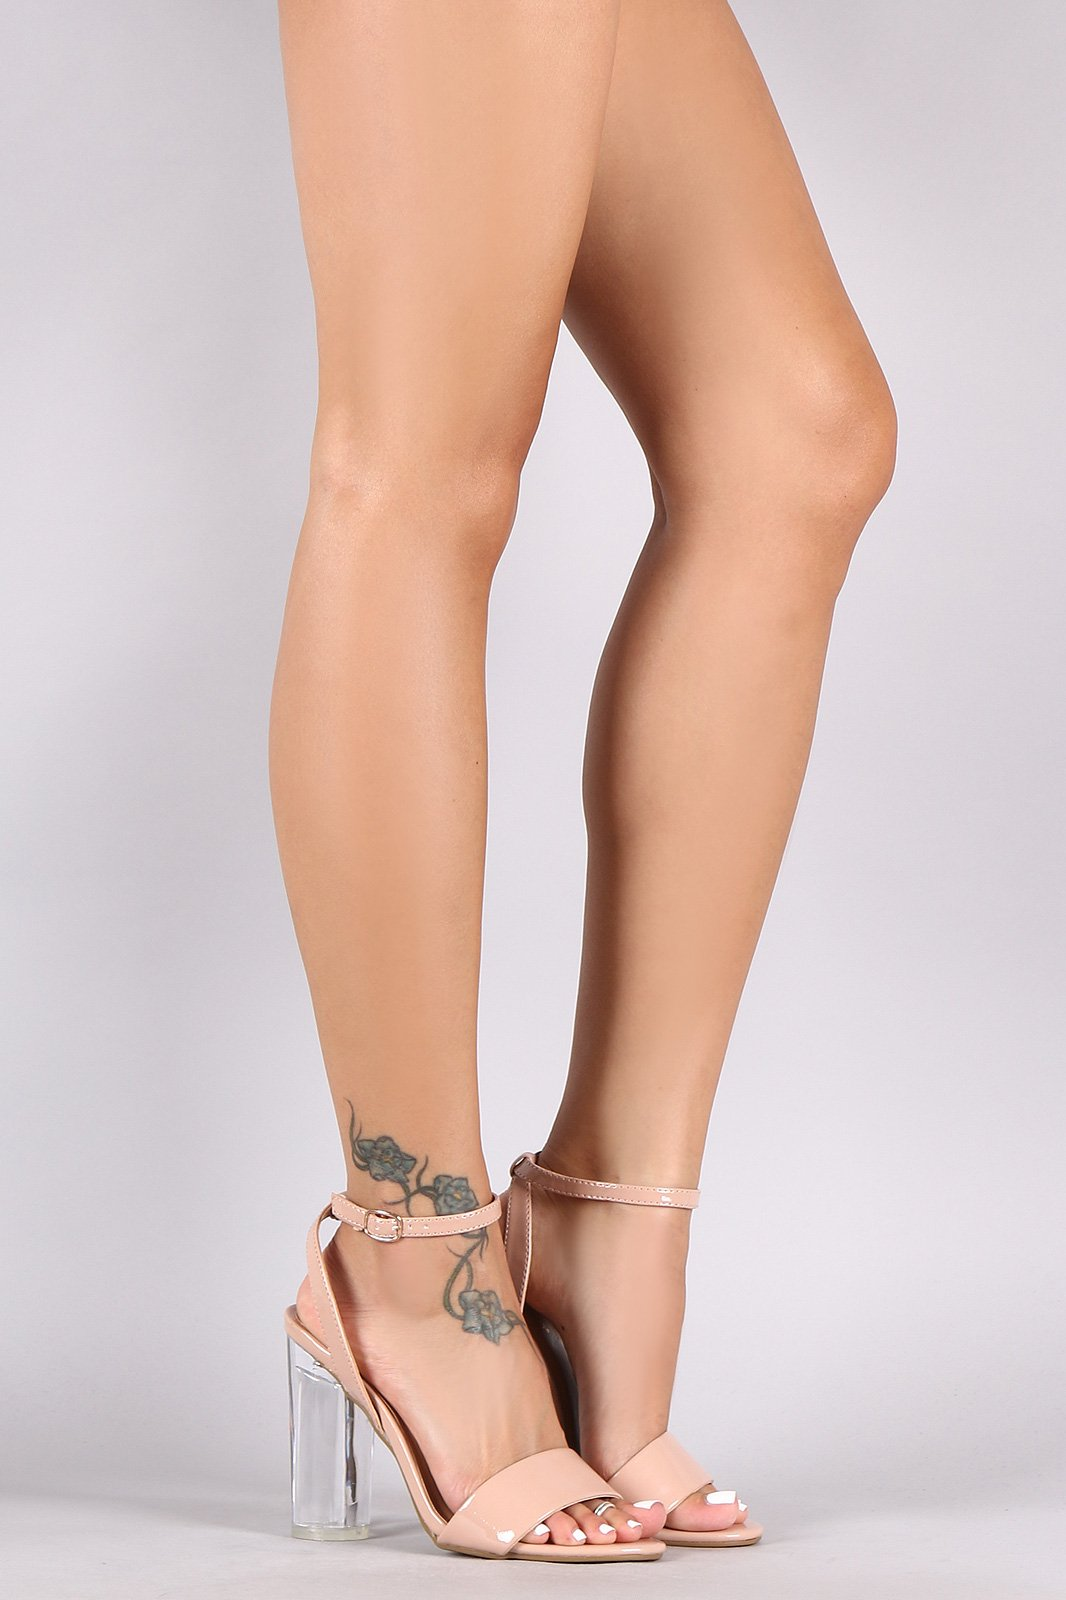 0f34e580b902 Bamboo Ankle Strap Patent Clear Cylindrical-Heel  AnklestrapsHeels   Stilettoheels